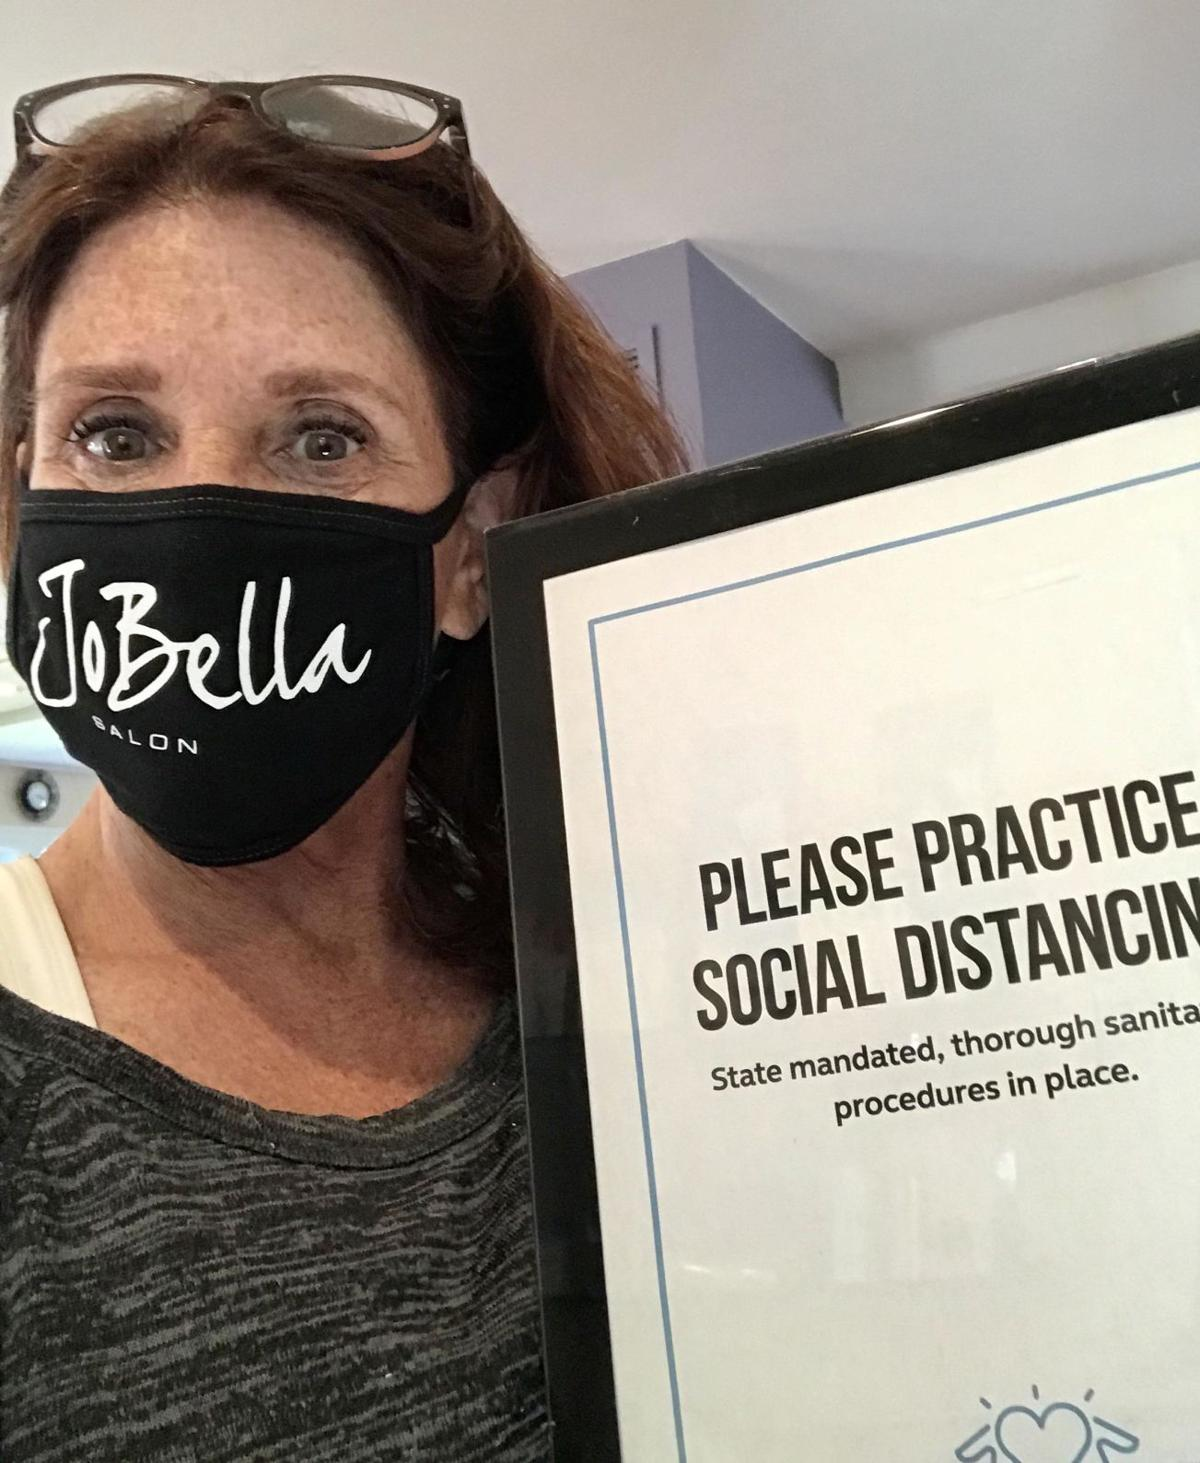 Branford's JoBella Salon join other stylists to rally against delay of reopening for hair salons, barber shops